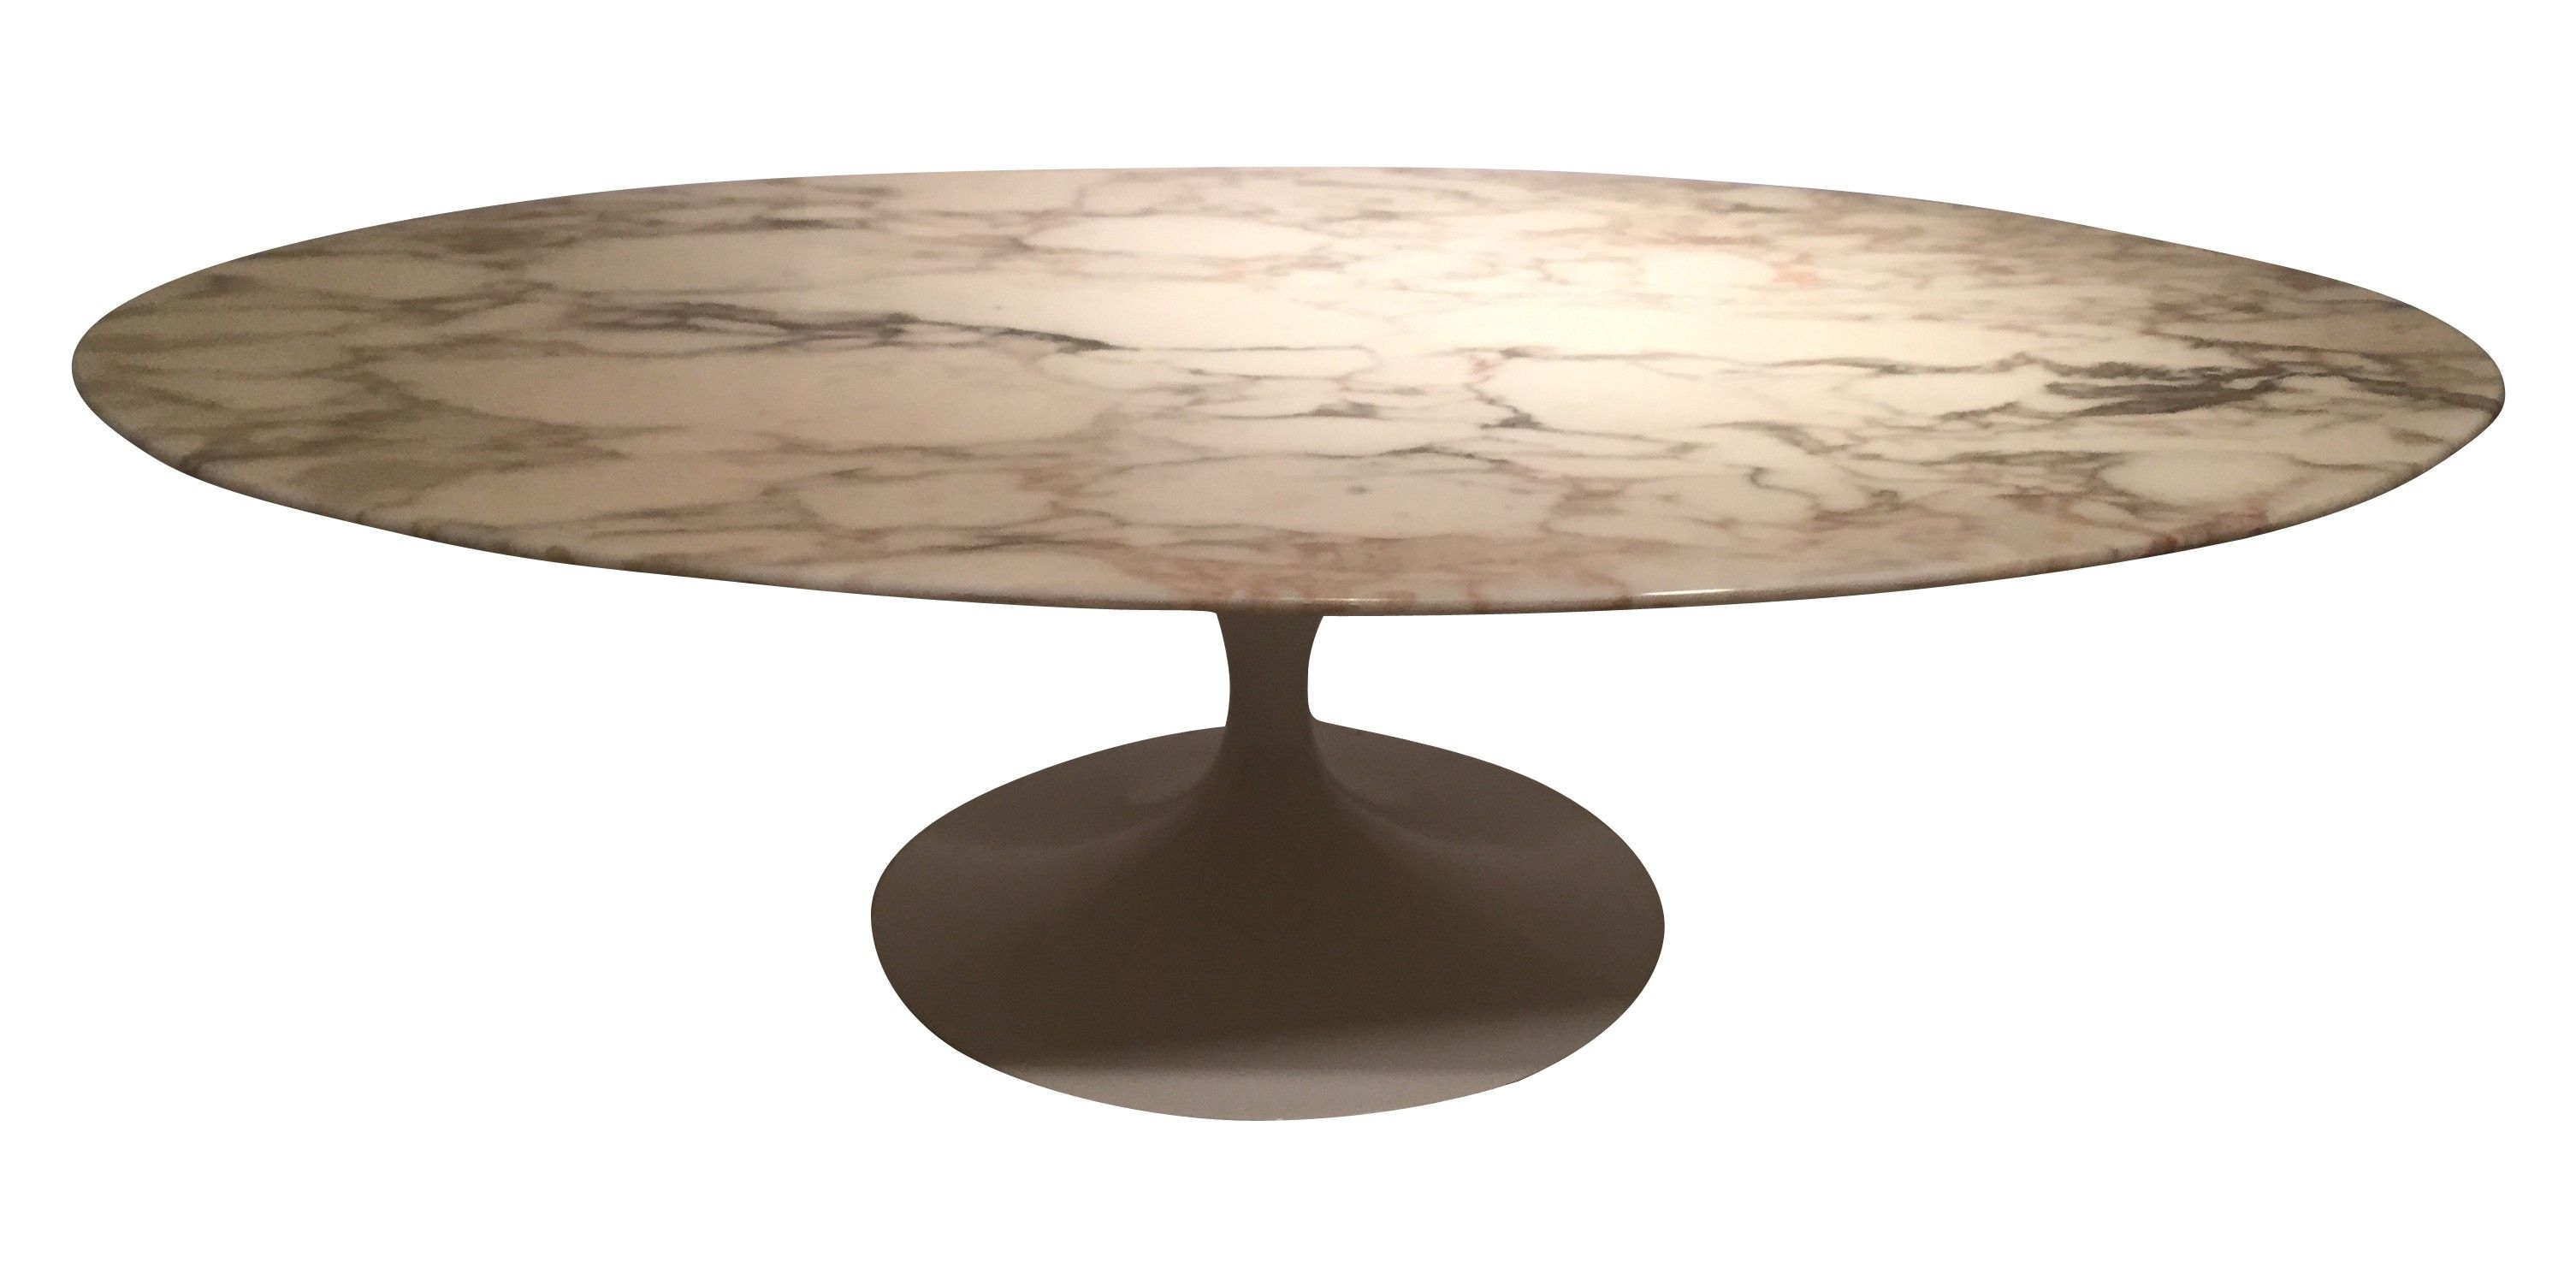 Grande table basse ovale en marbre eero saarinen ann es for Table basse tulipe